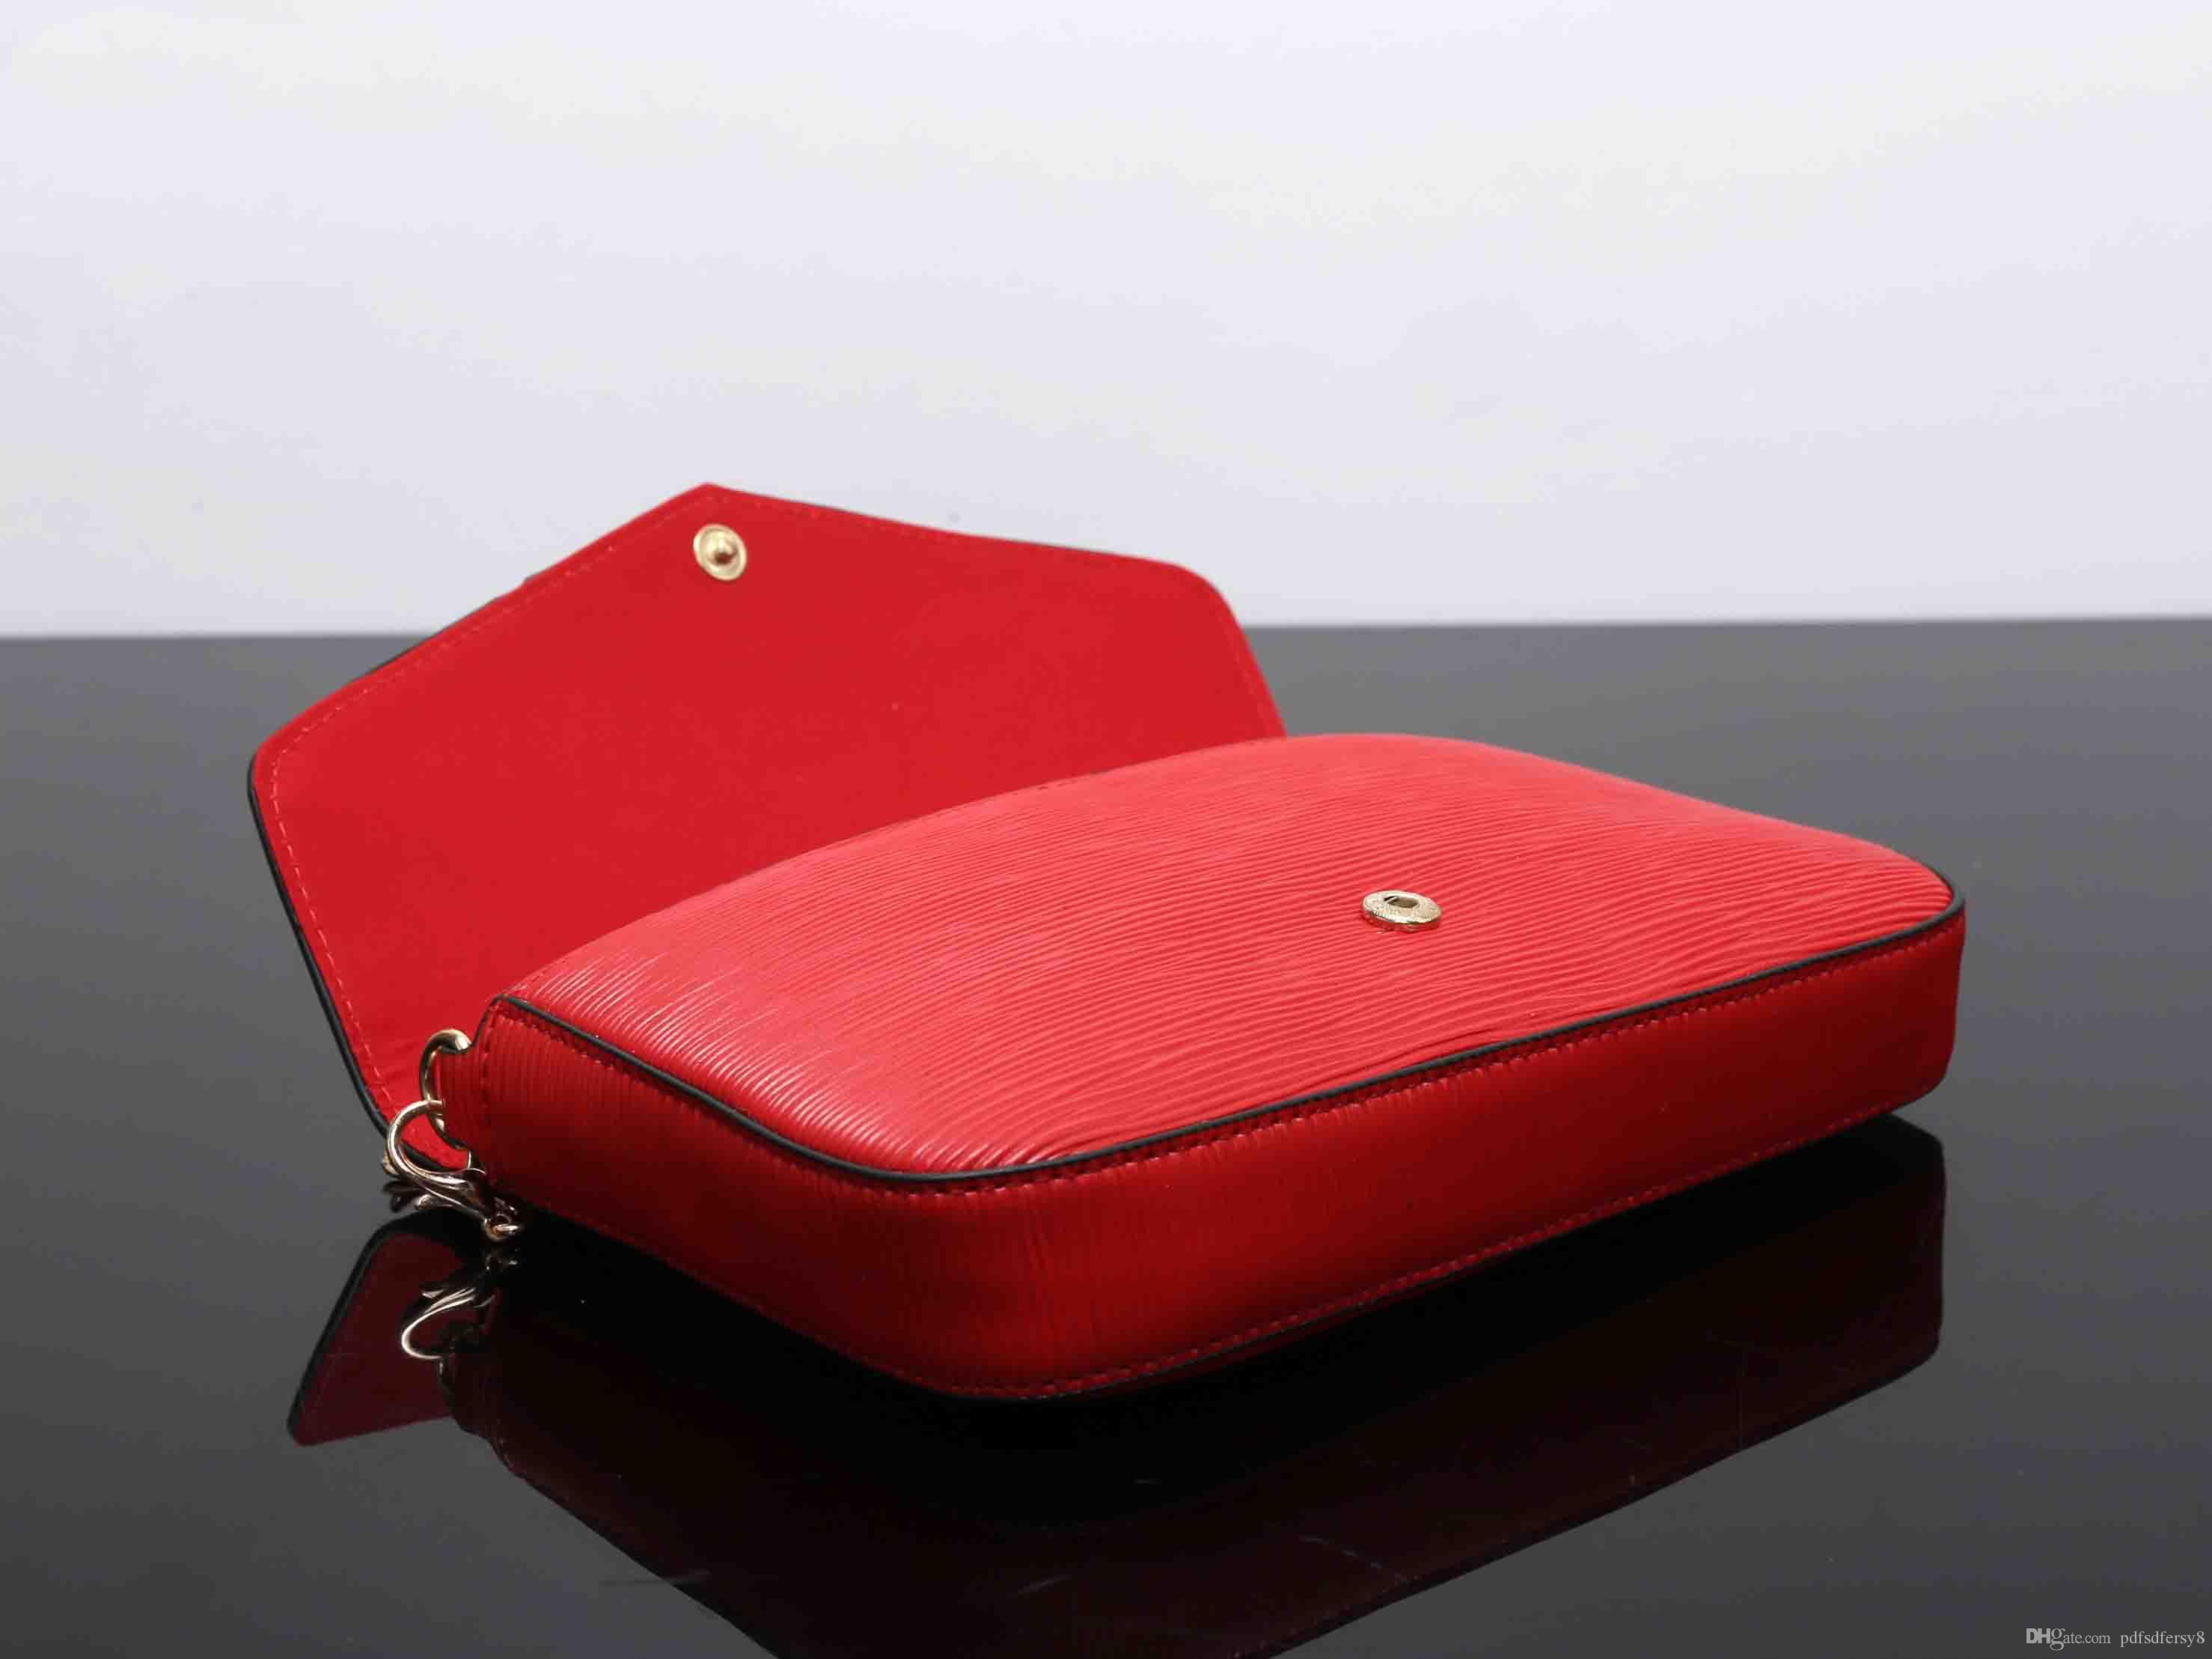 2018 factory prices sale Small styles Women shoulder bags whole Red sup leather high quality Crossbody 23cm chain equisite purses